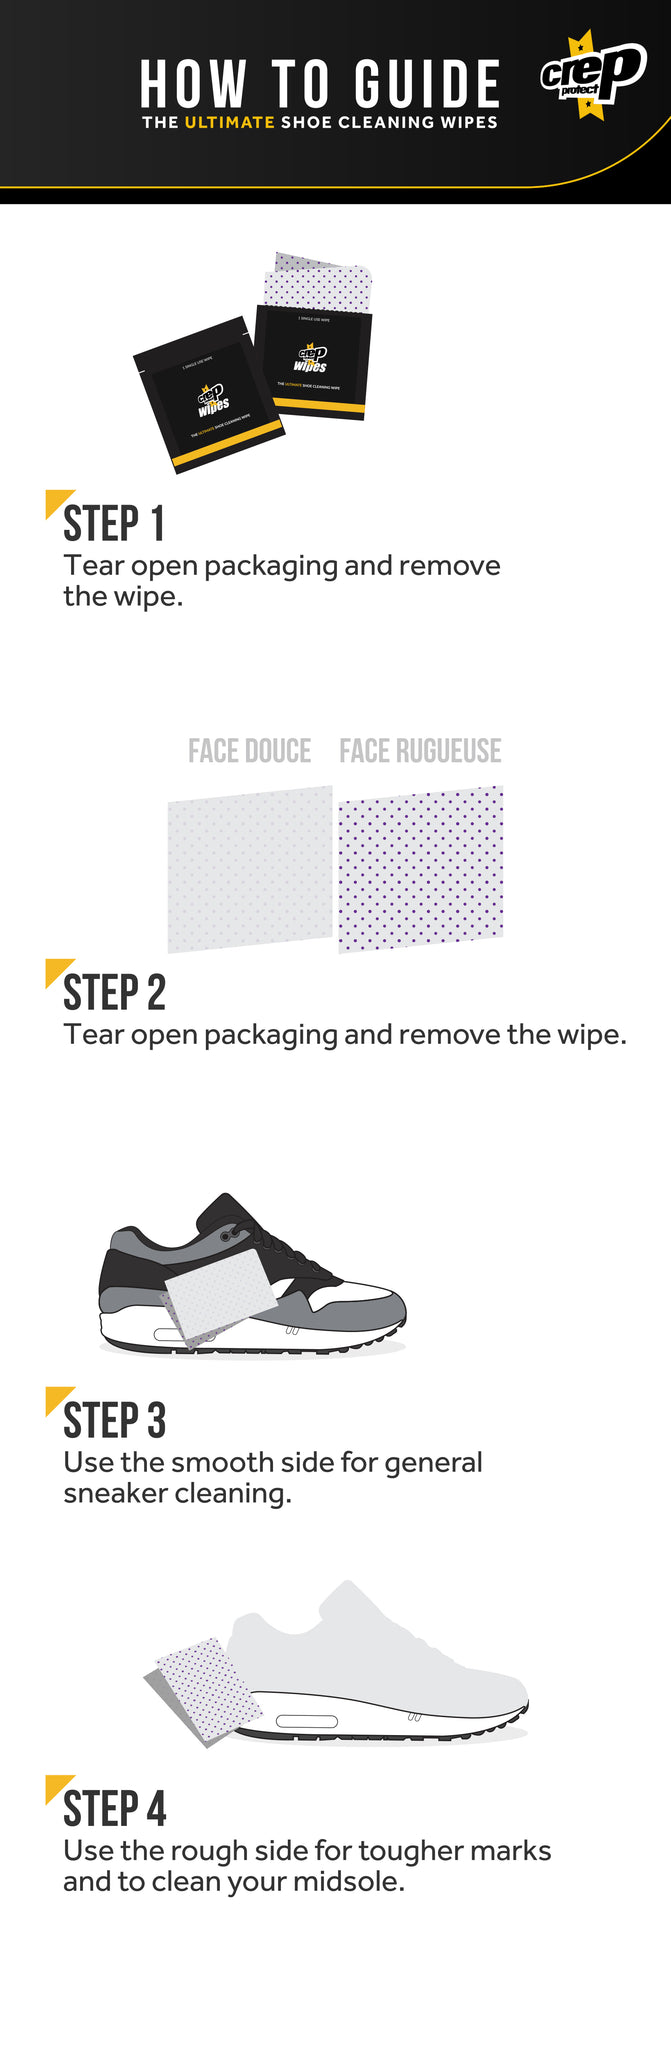 Crep Protect Wipes User Guide